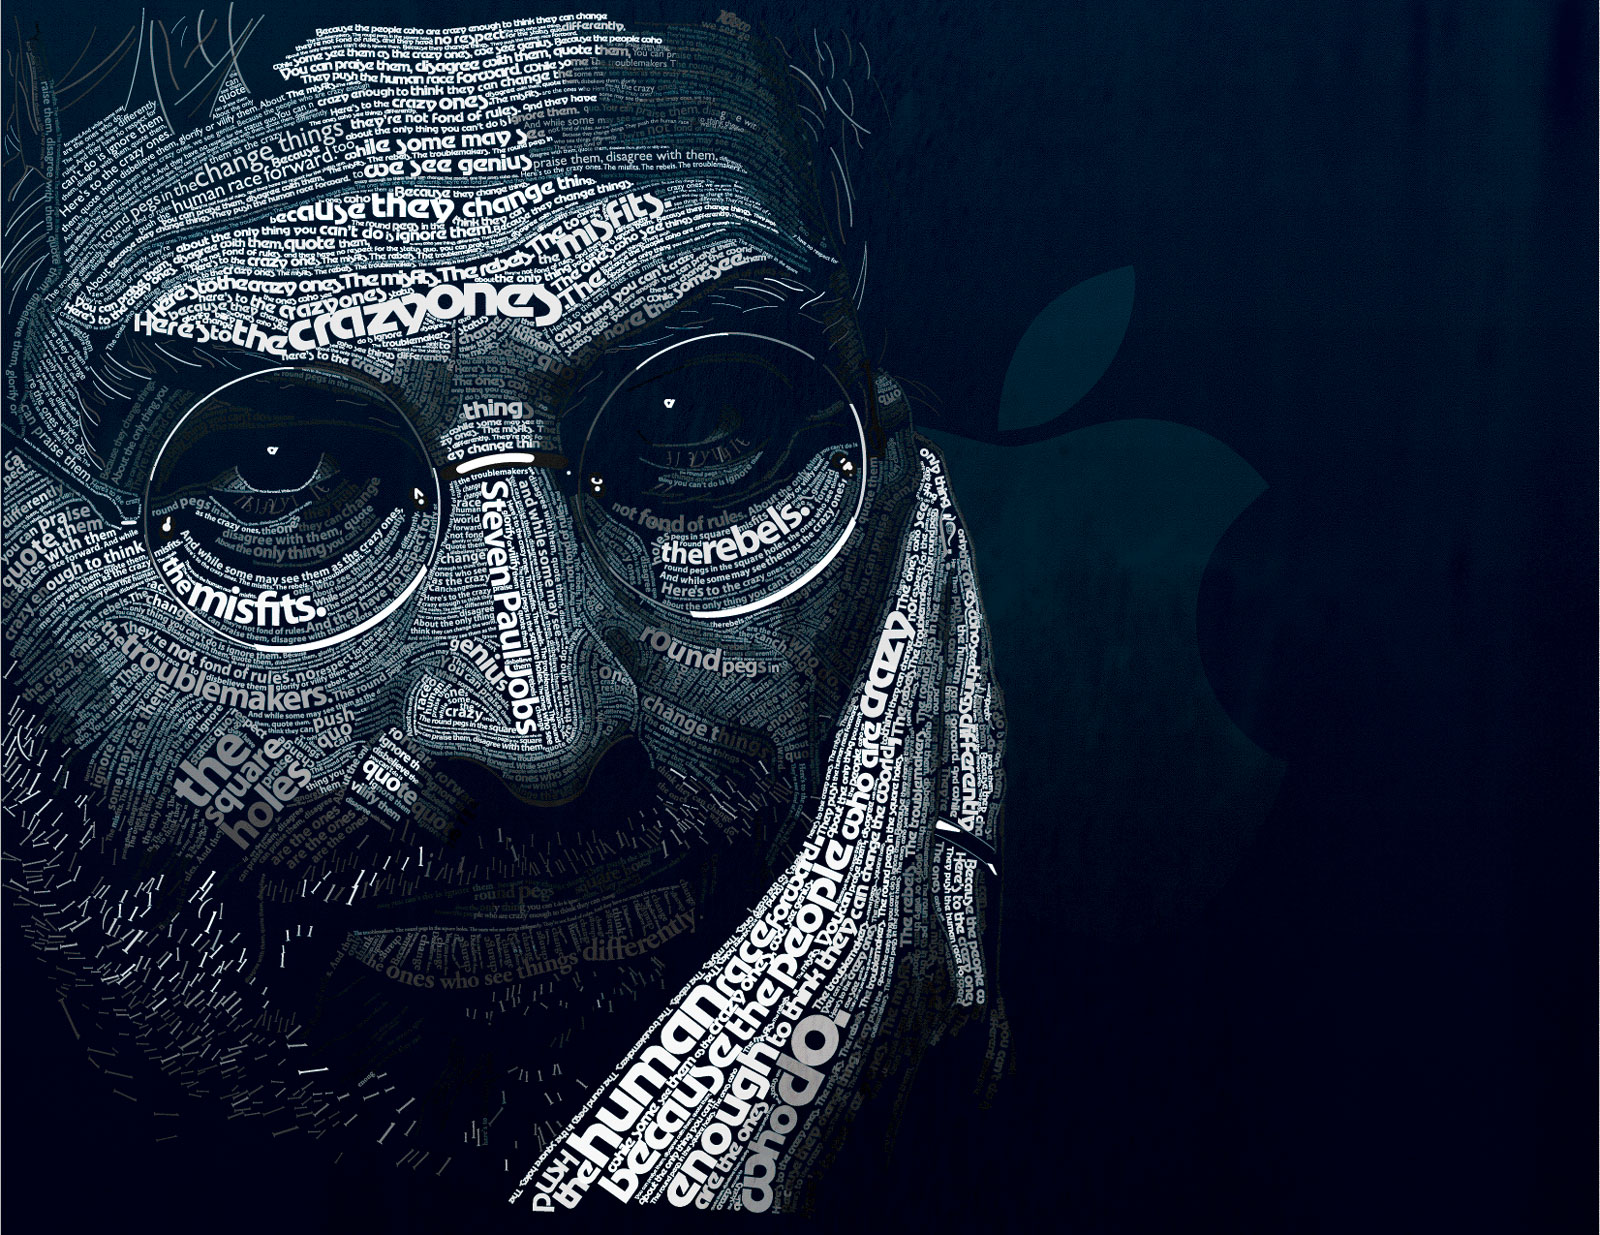 Steven Paul Jobs by dylanroscover 67 Wonderful Typographic Portraits